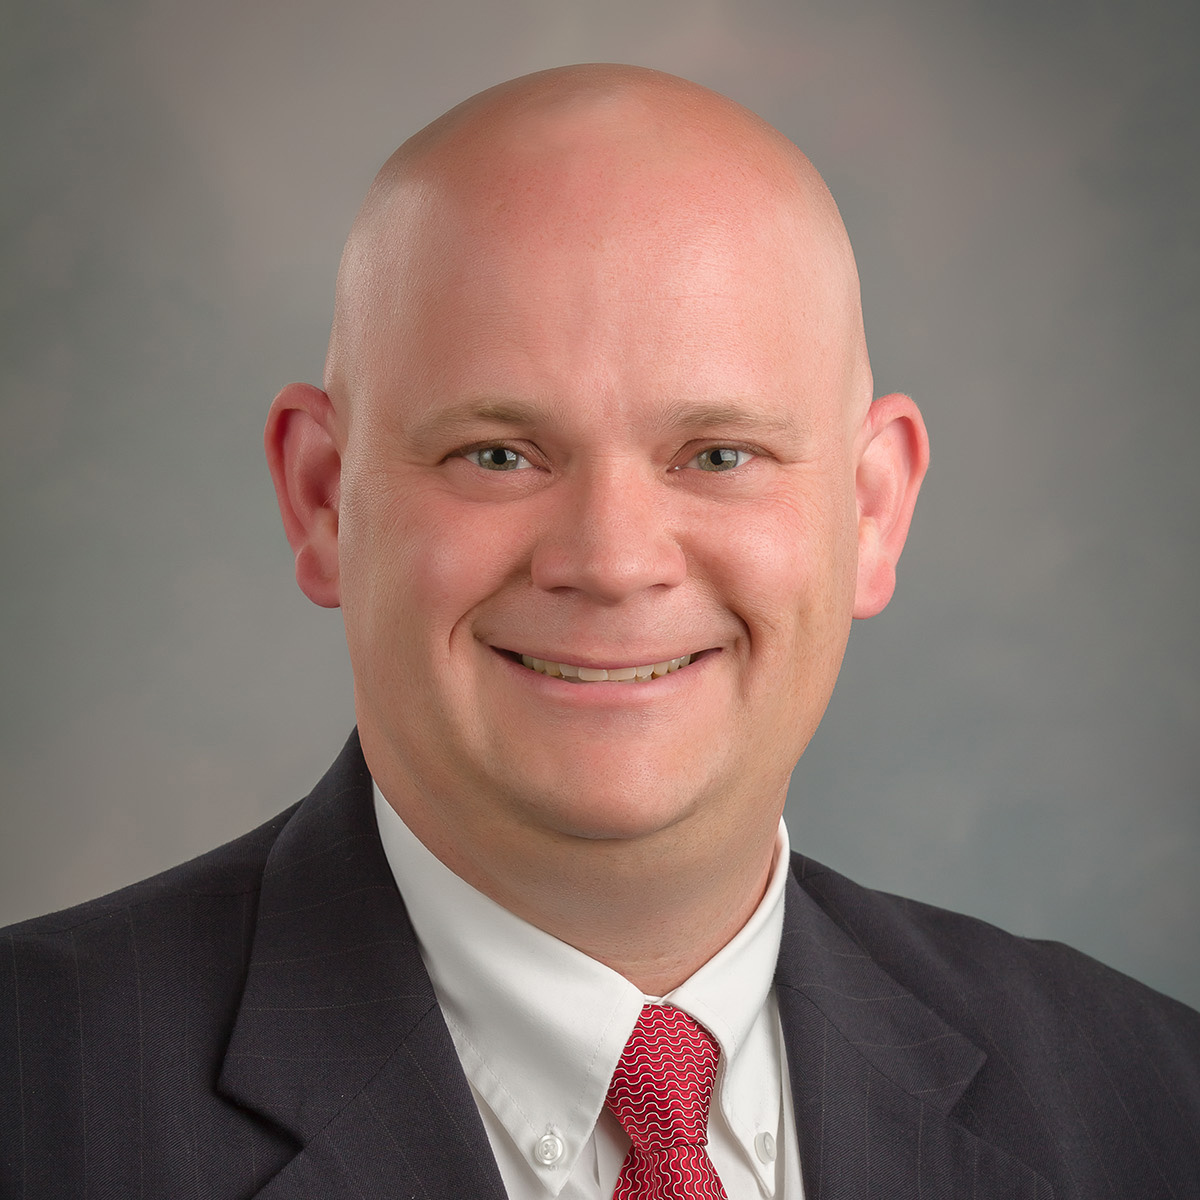 NATHAN S.J. WILLLIAMS - Practice AreasEstate and Personal Planning, Estate and Trust Administration, Guardianships, Probate Litigation, Charities, Business Organizations, General Litigation, Taxation